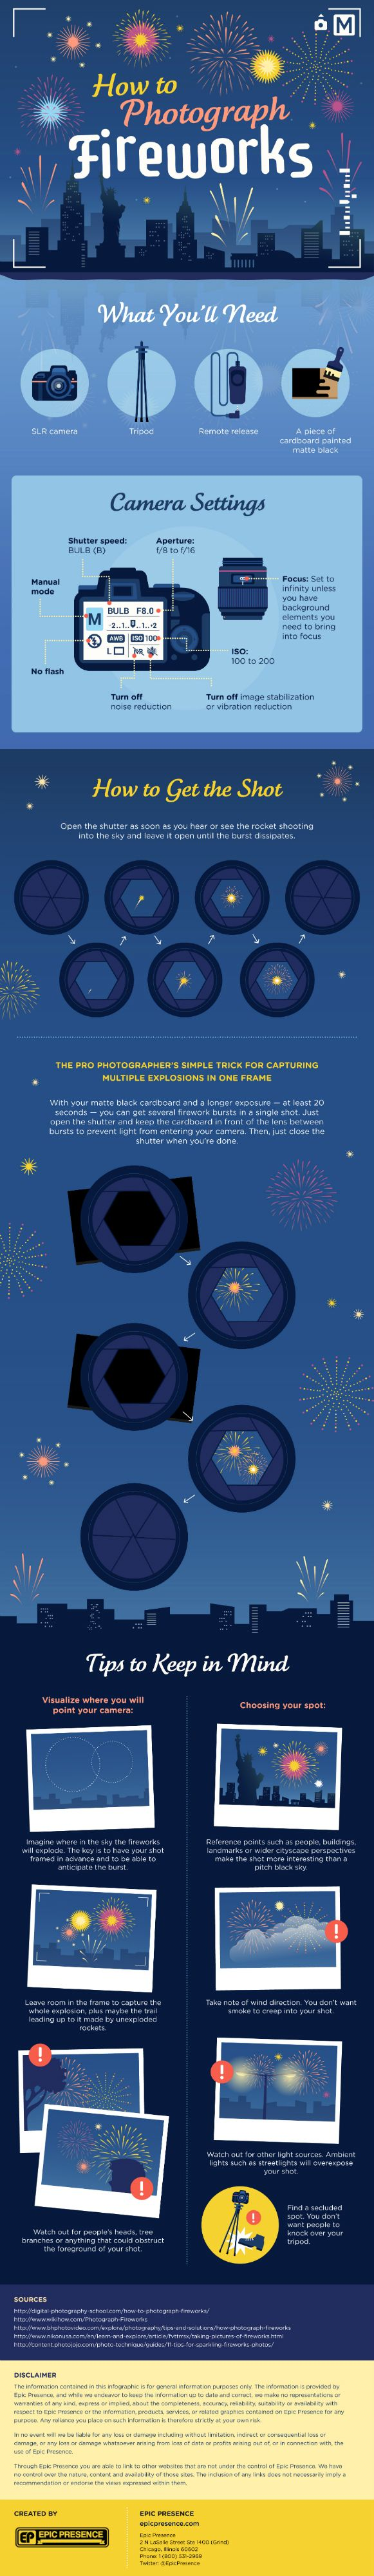 Tips You Can Use to Take Better Photos of Fireworks